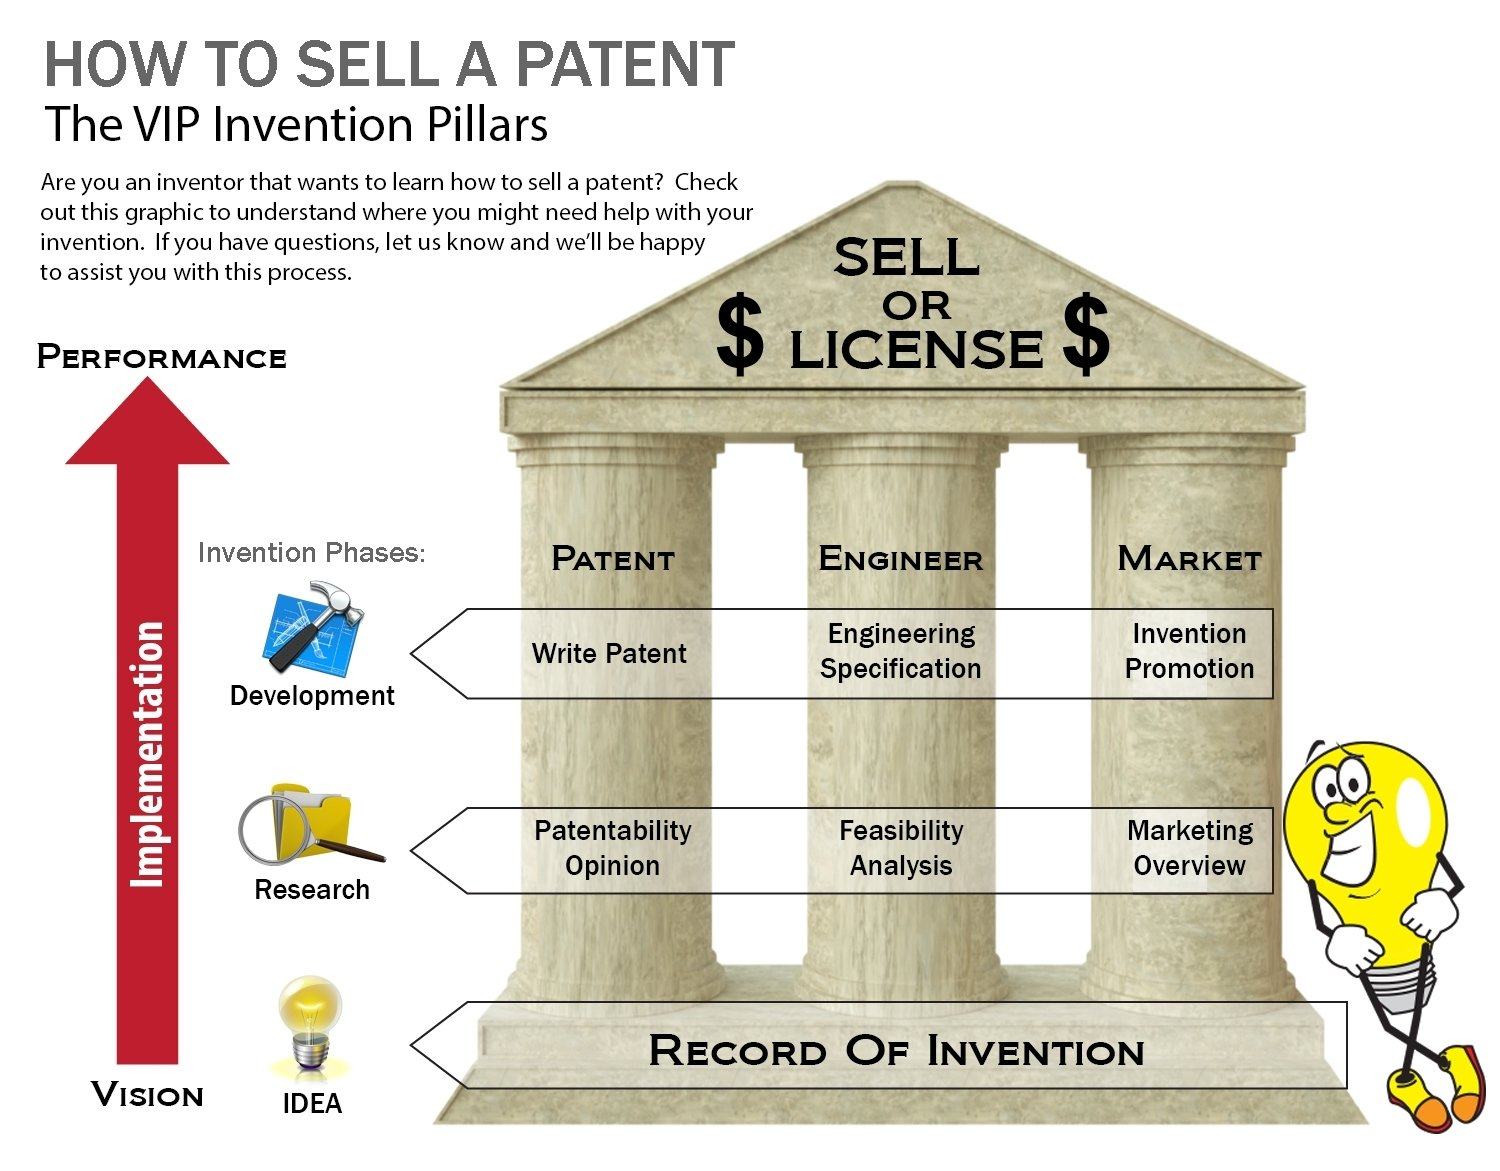 10 Perfect How To Market An Idea how to patent and sell an invention idea for saleinventor 2020